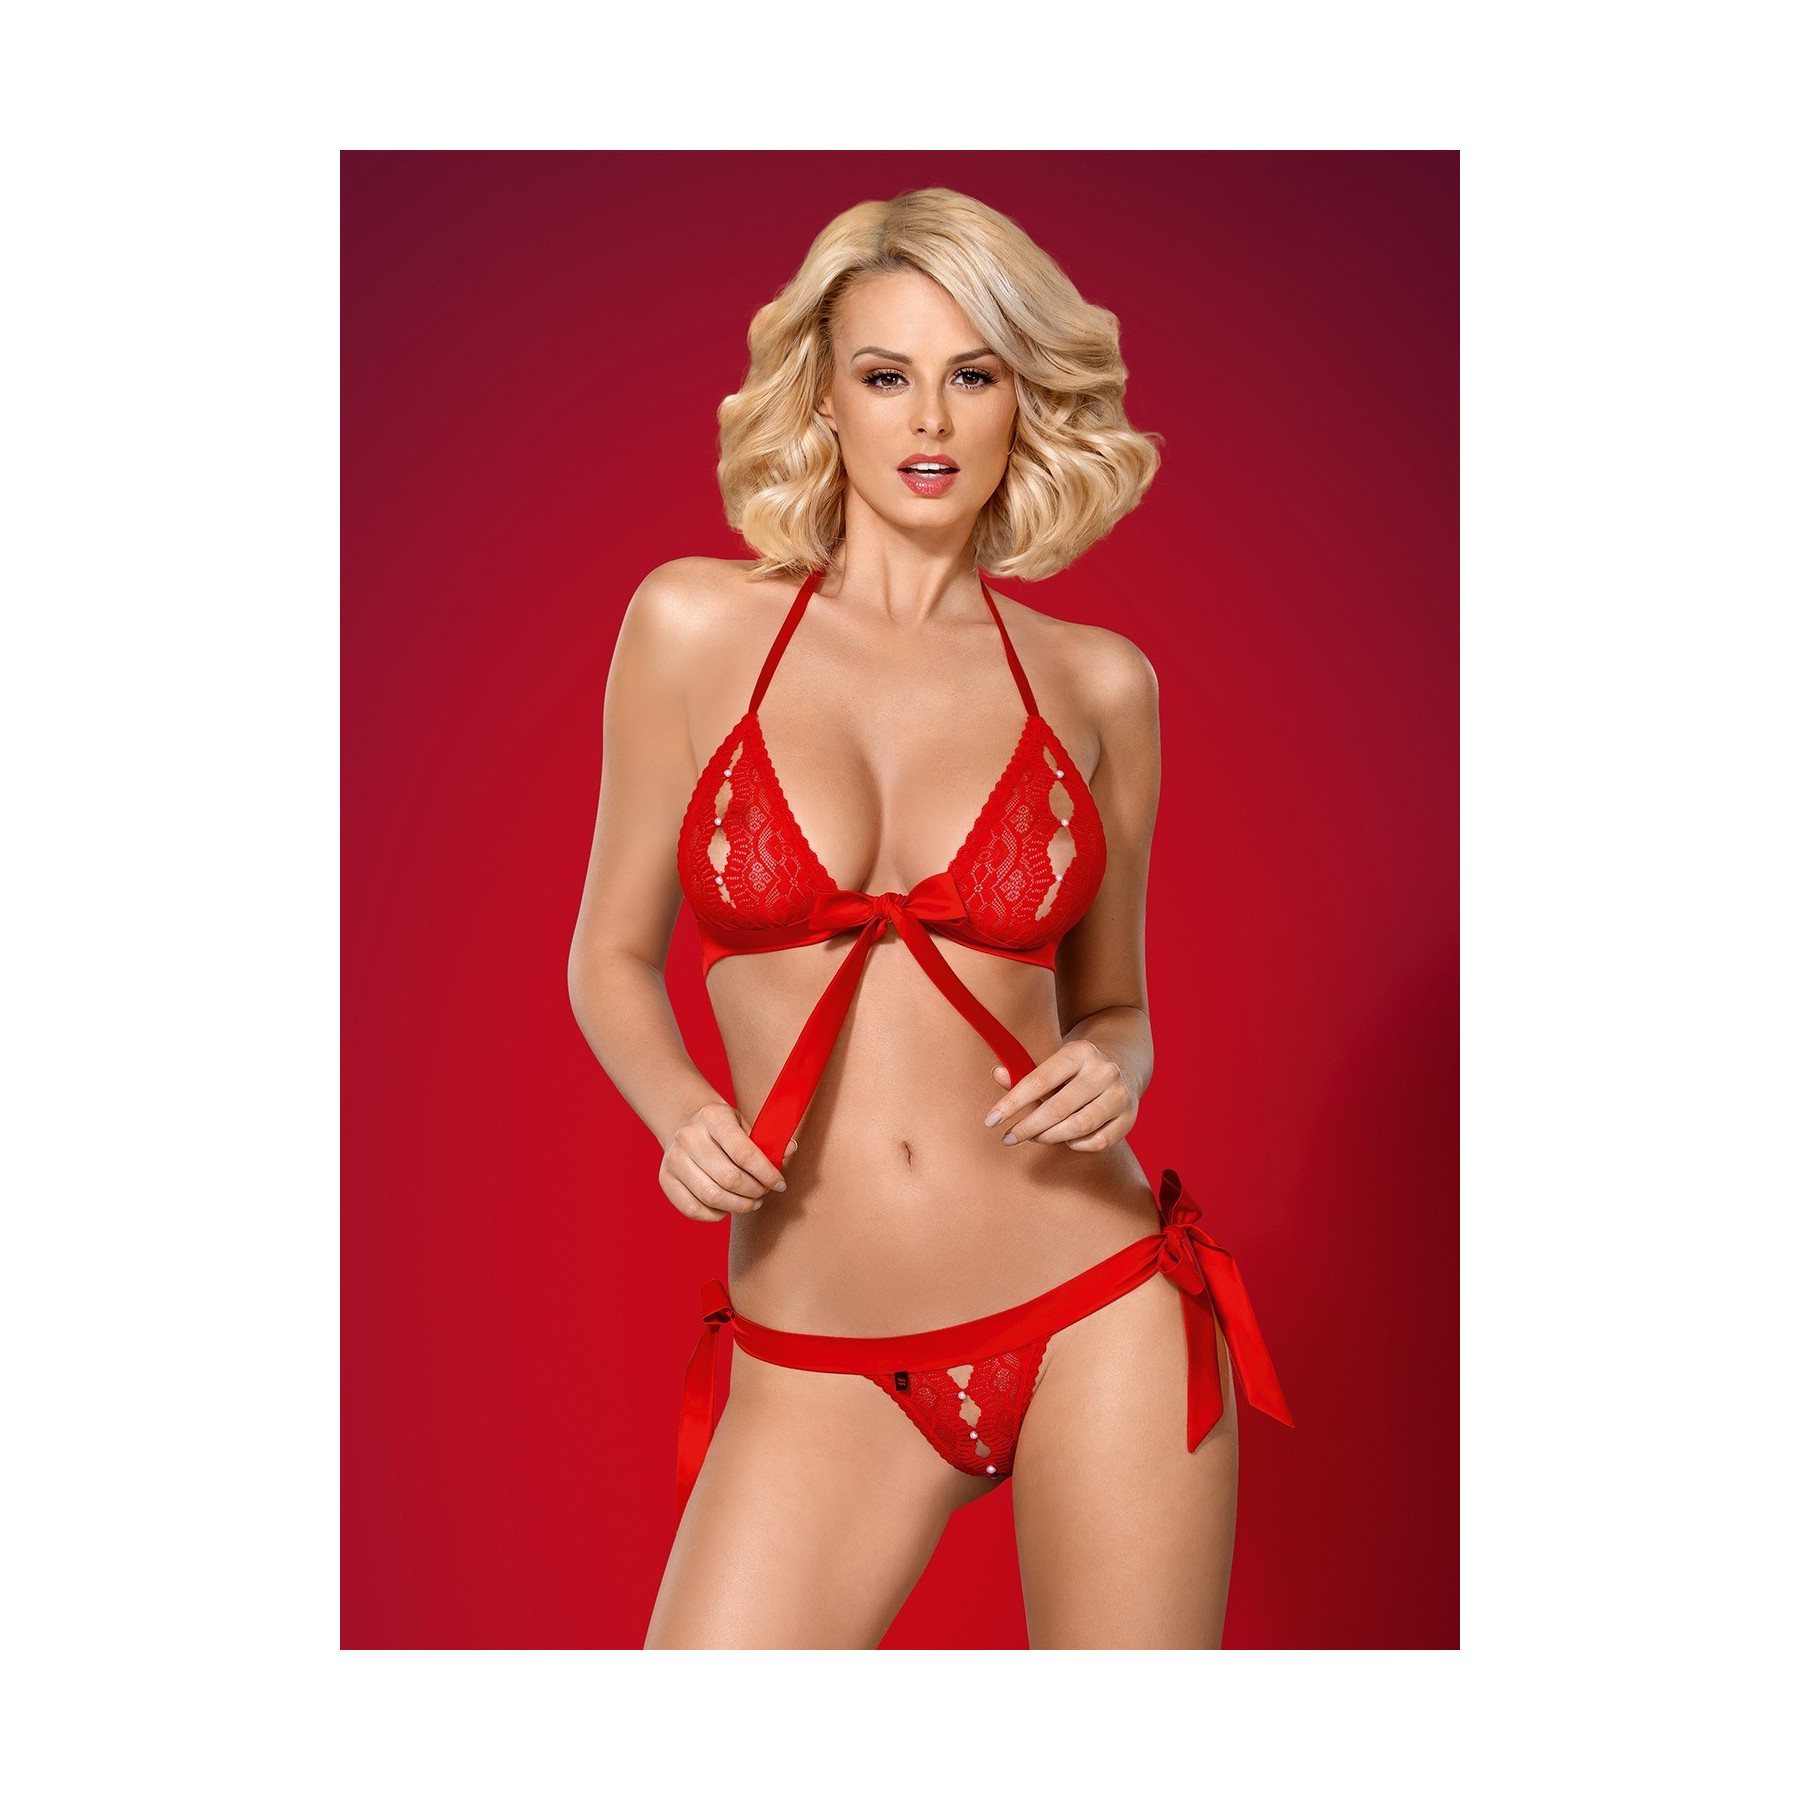 completino intimo in pizzo rosso 822 Obsessive